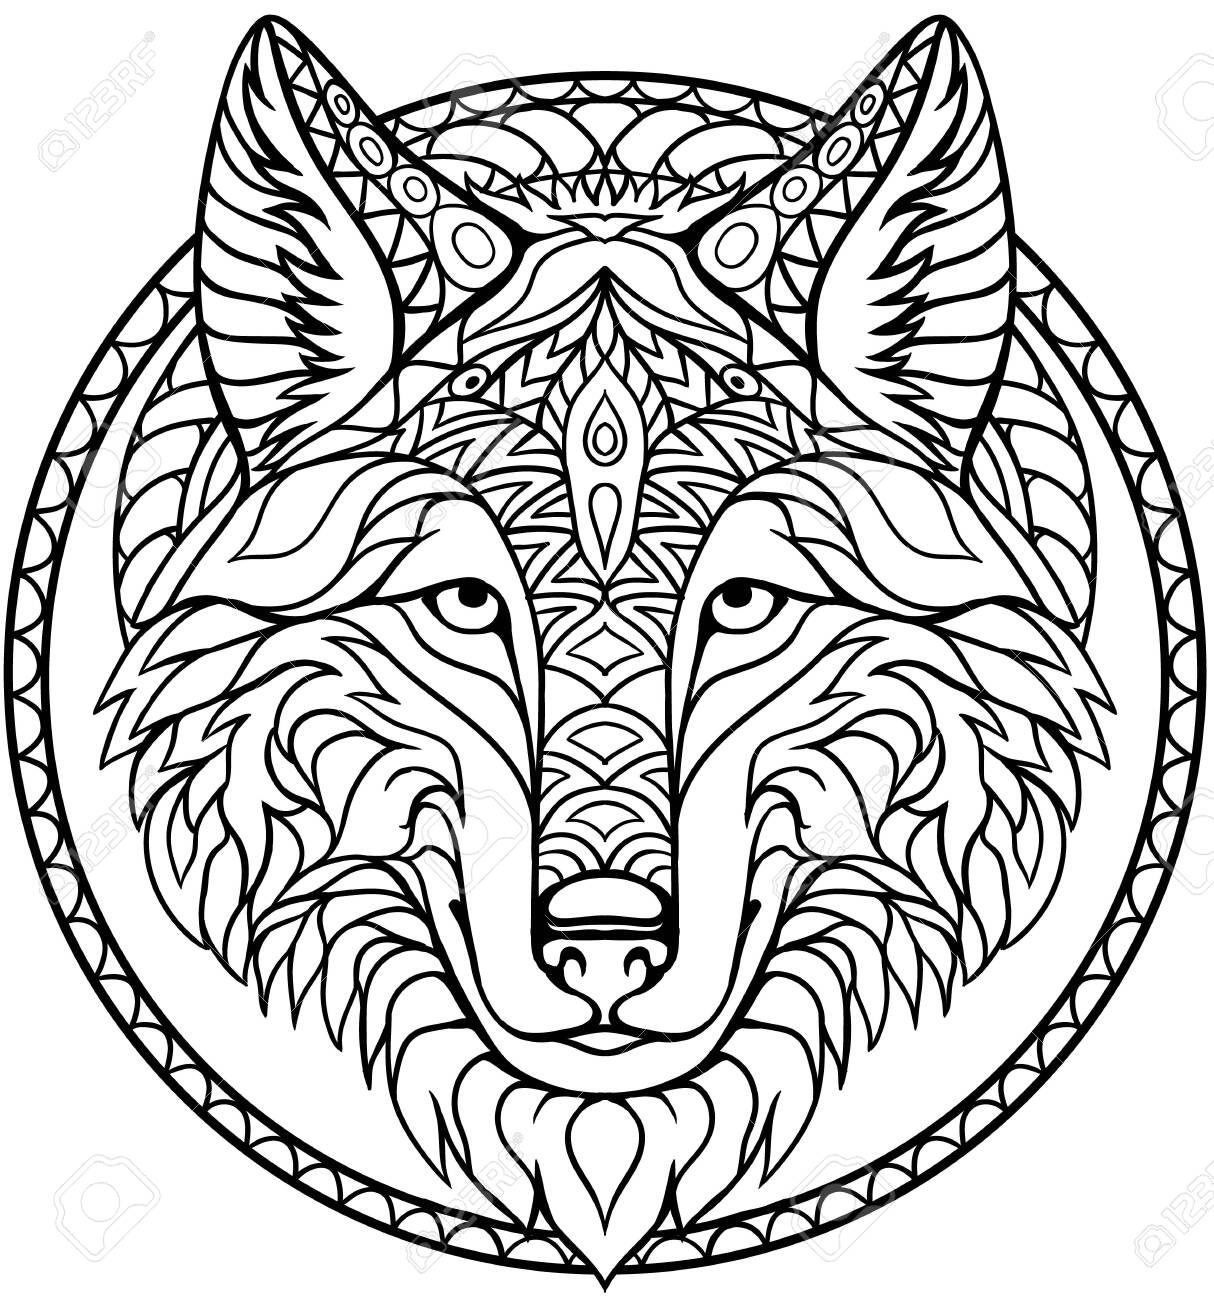 - Doodle Wolf Coloring Book Outline Drawing In Vector Royalty Free